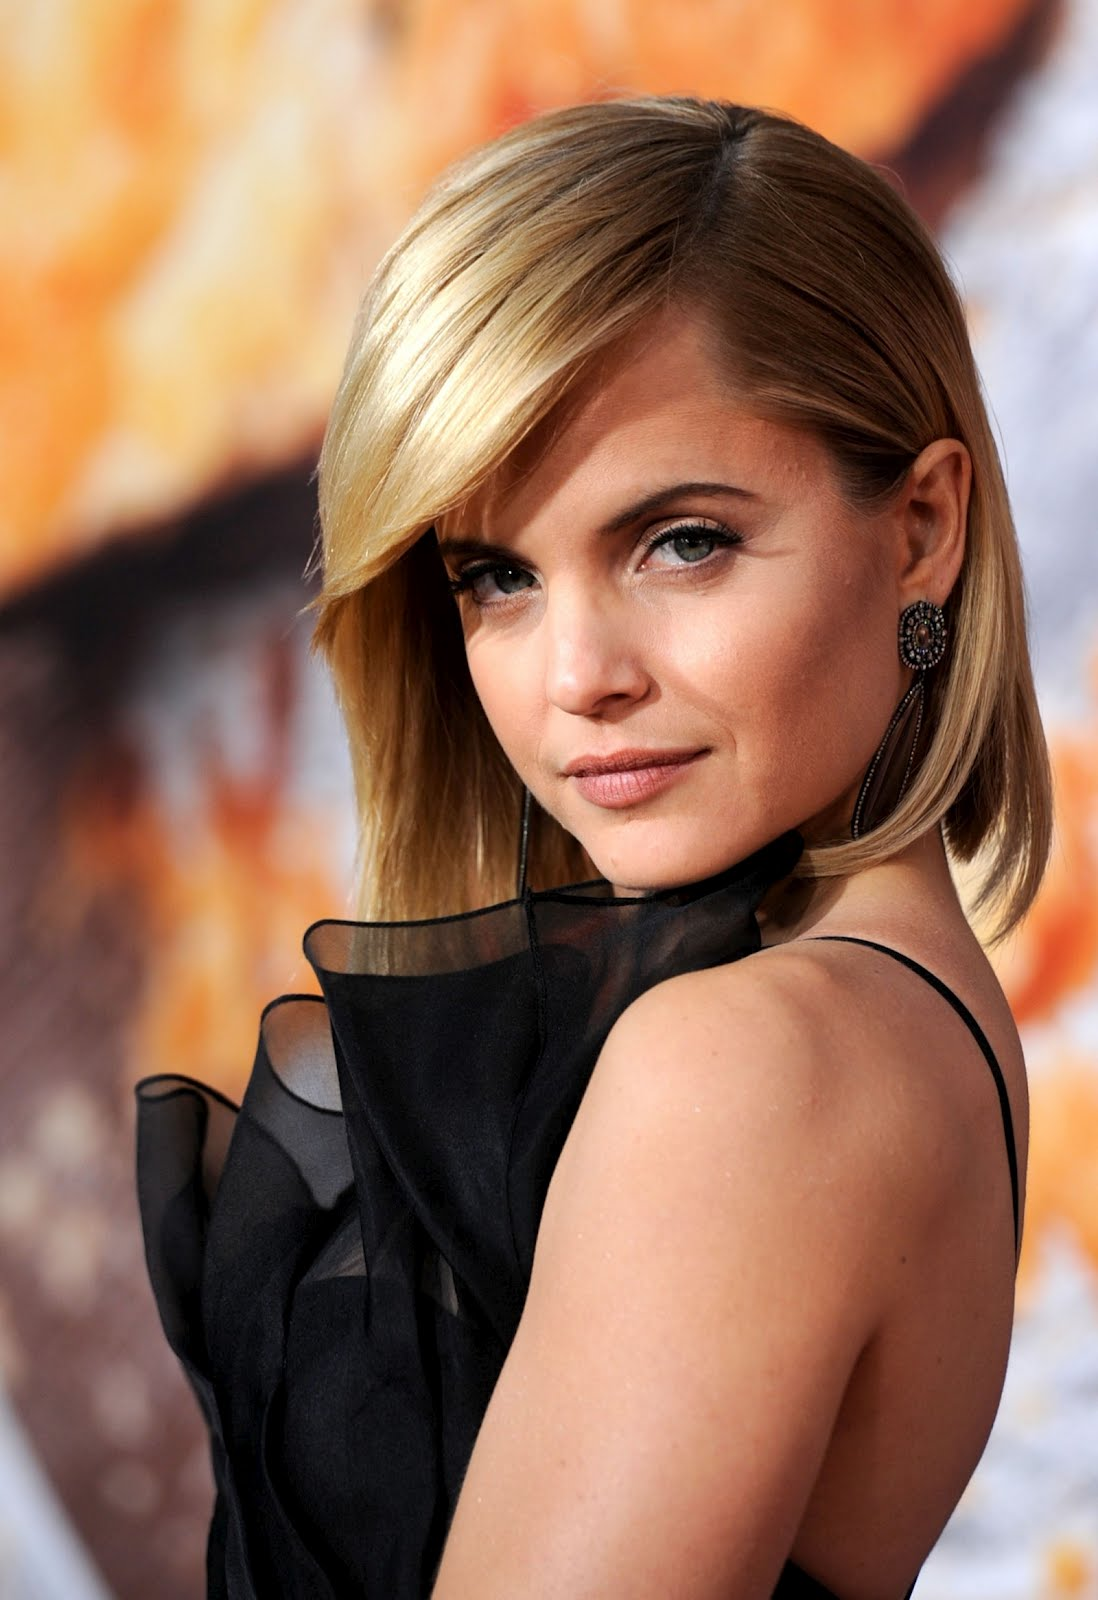 http://2.bp.blogspot.com/-IsI6f4CnHEU/T2o-92oi3-I/AAAAAAAAPjs/mCuERvEeFIE/s1600/Mena_Suvari_hollywood_cut_babe_wallpapers_smile.jpg